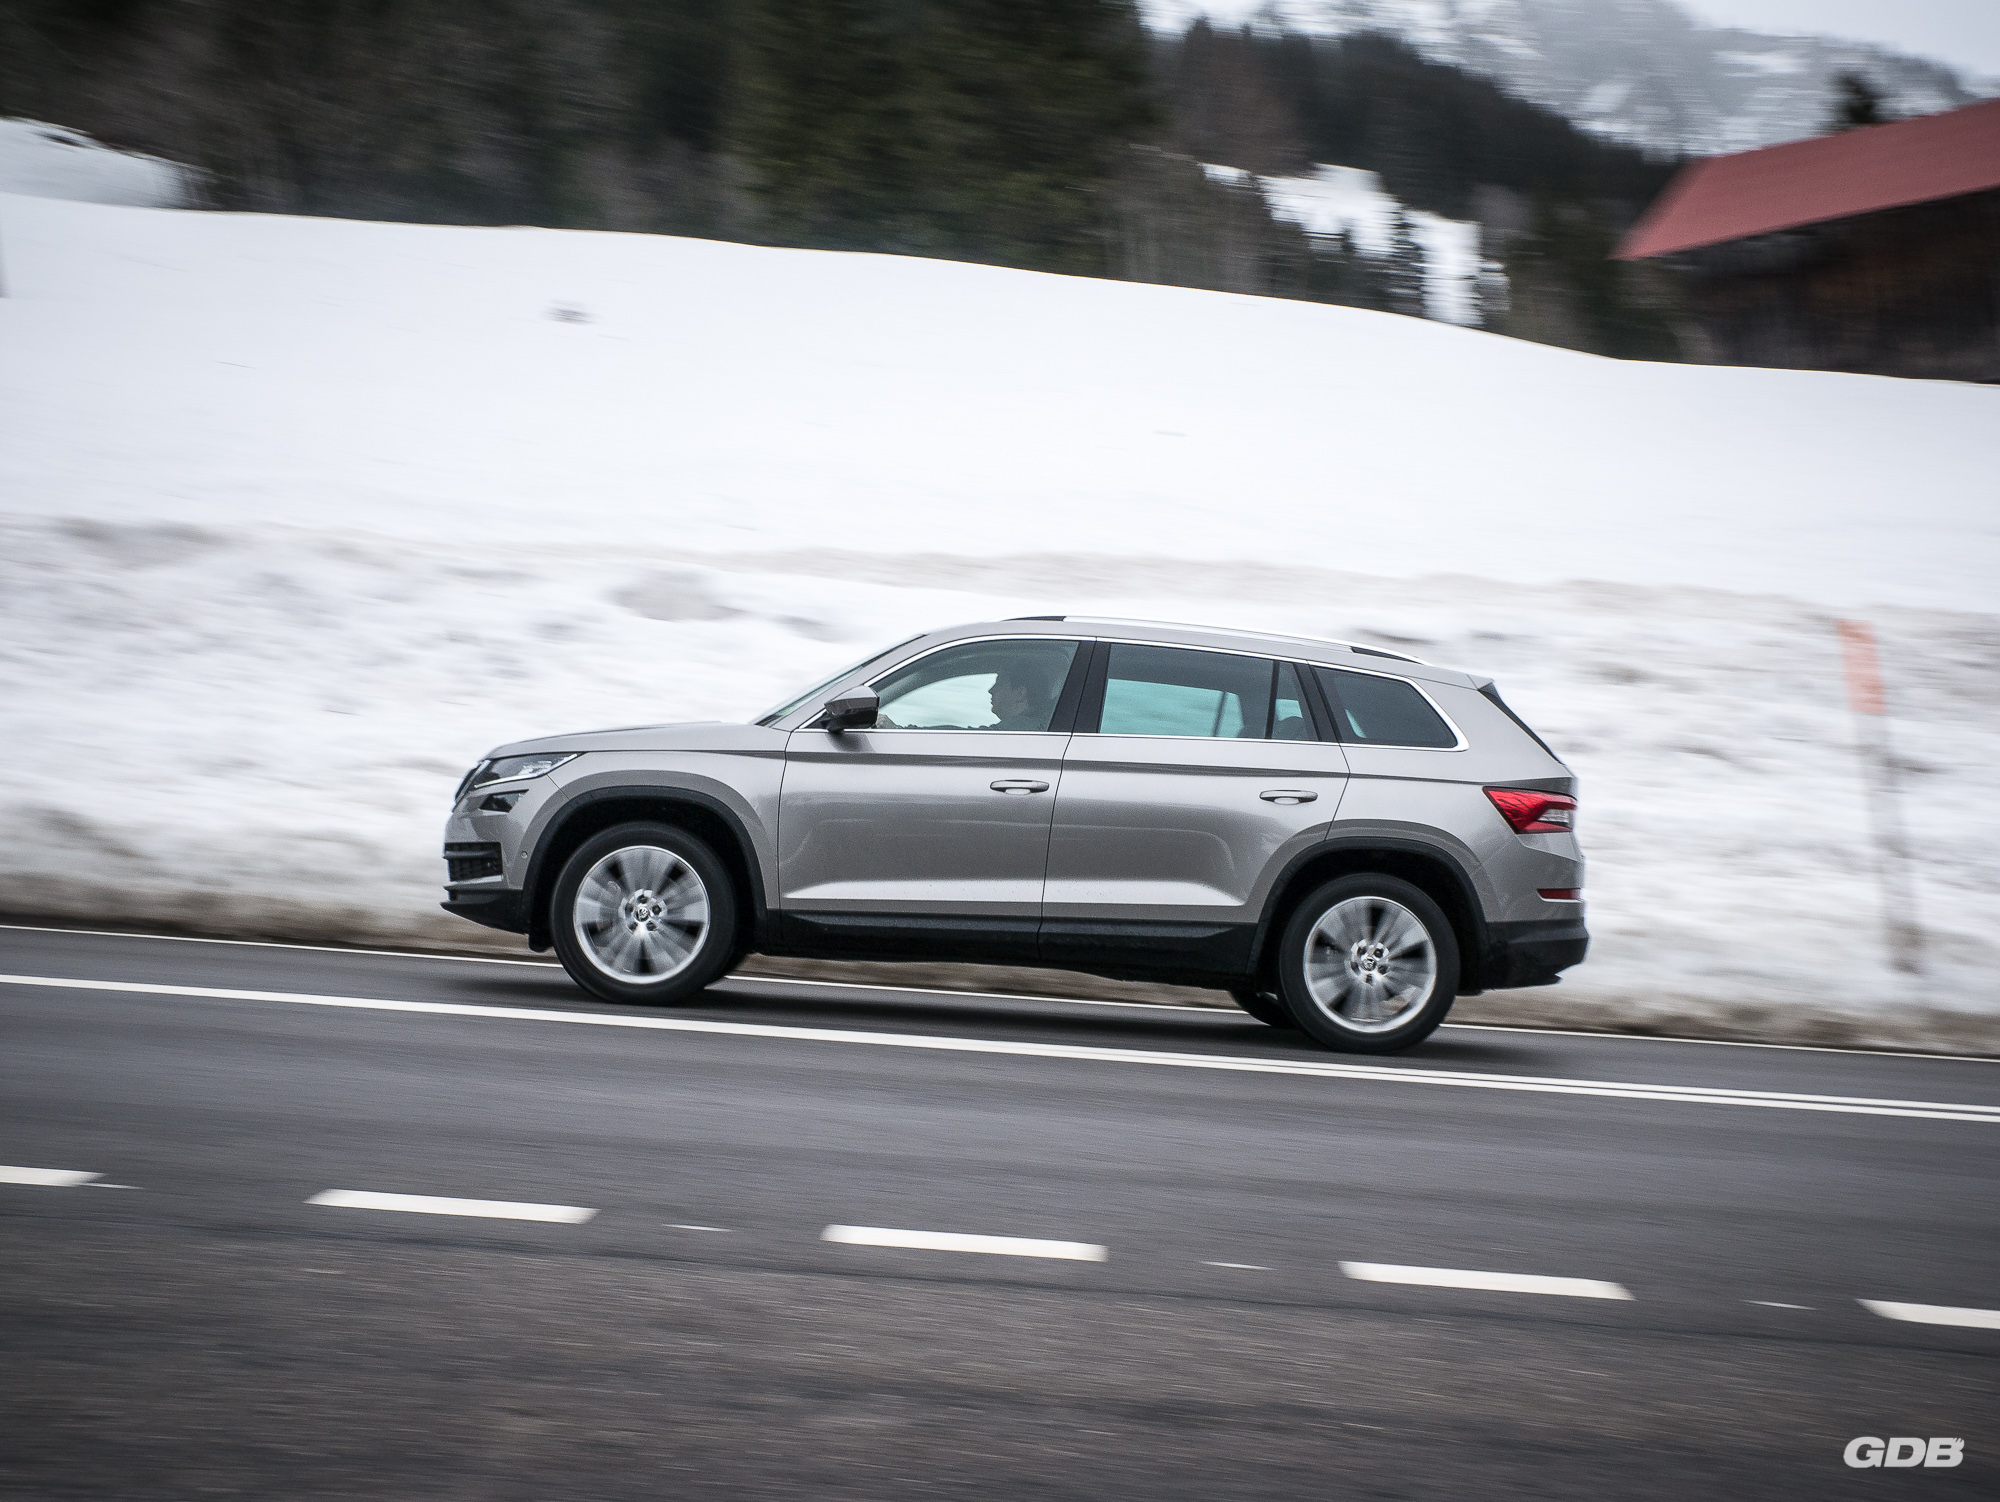 Skoda Kodiaq-Crédit photo Guillaume - GDB.tv